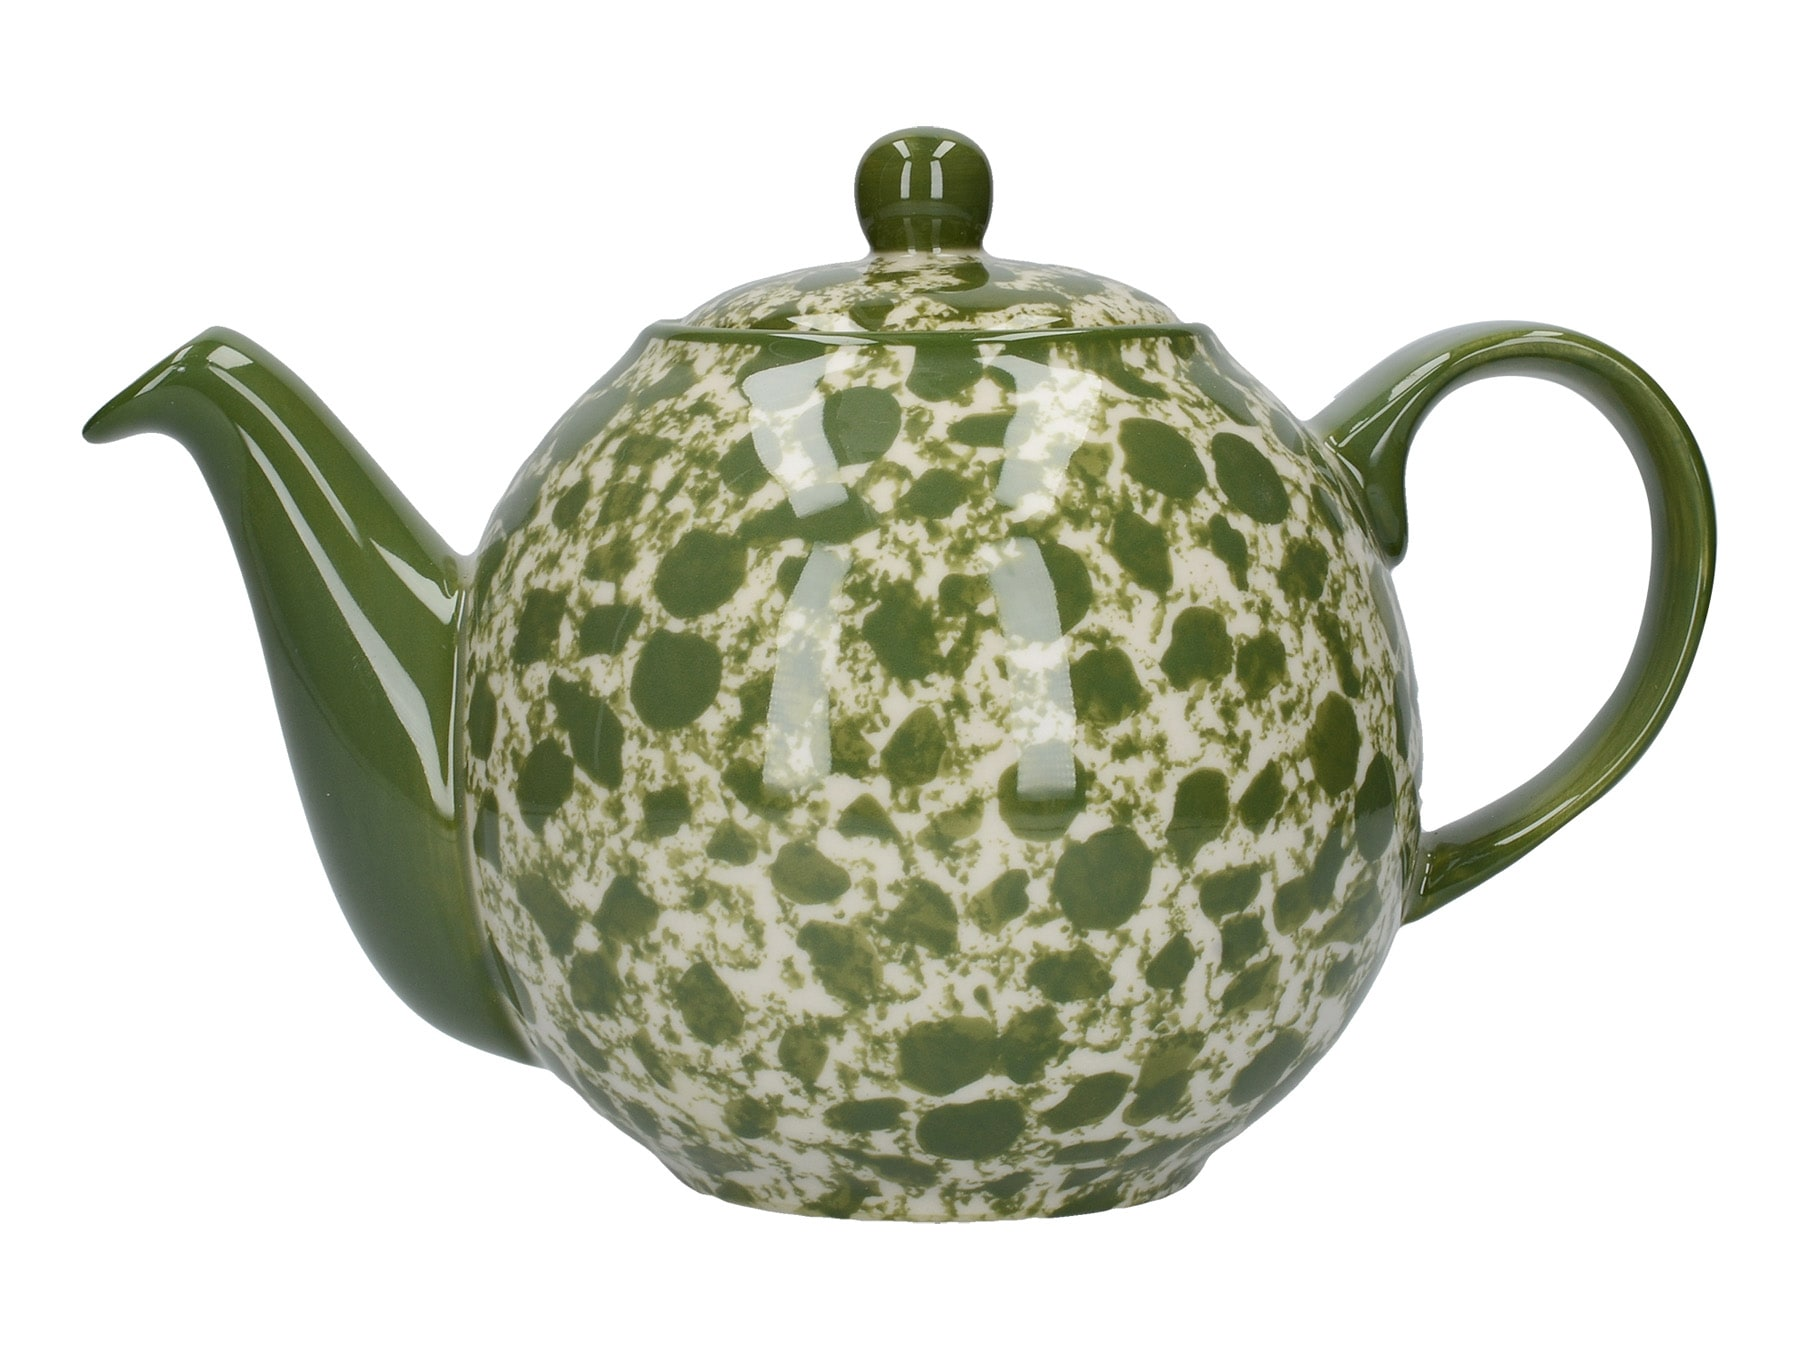 London Pottery Splash Globe 4 Cup Teapot Green